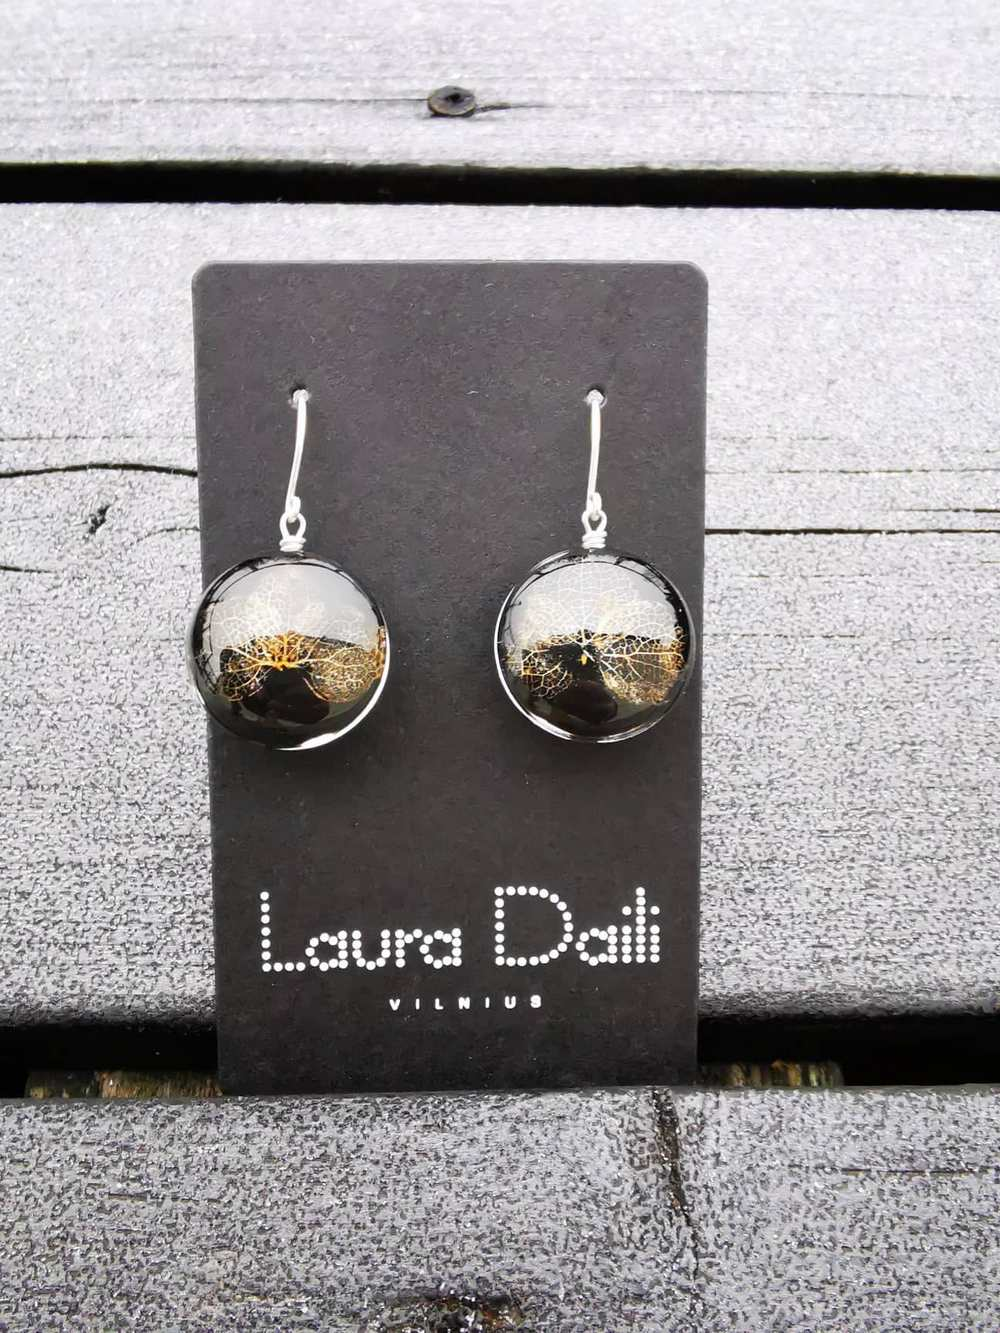 laura daili jewelry (7)